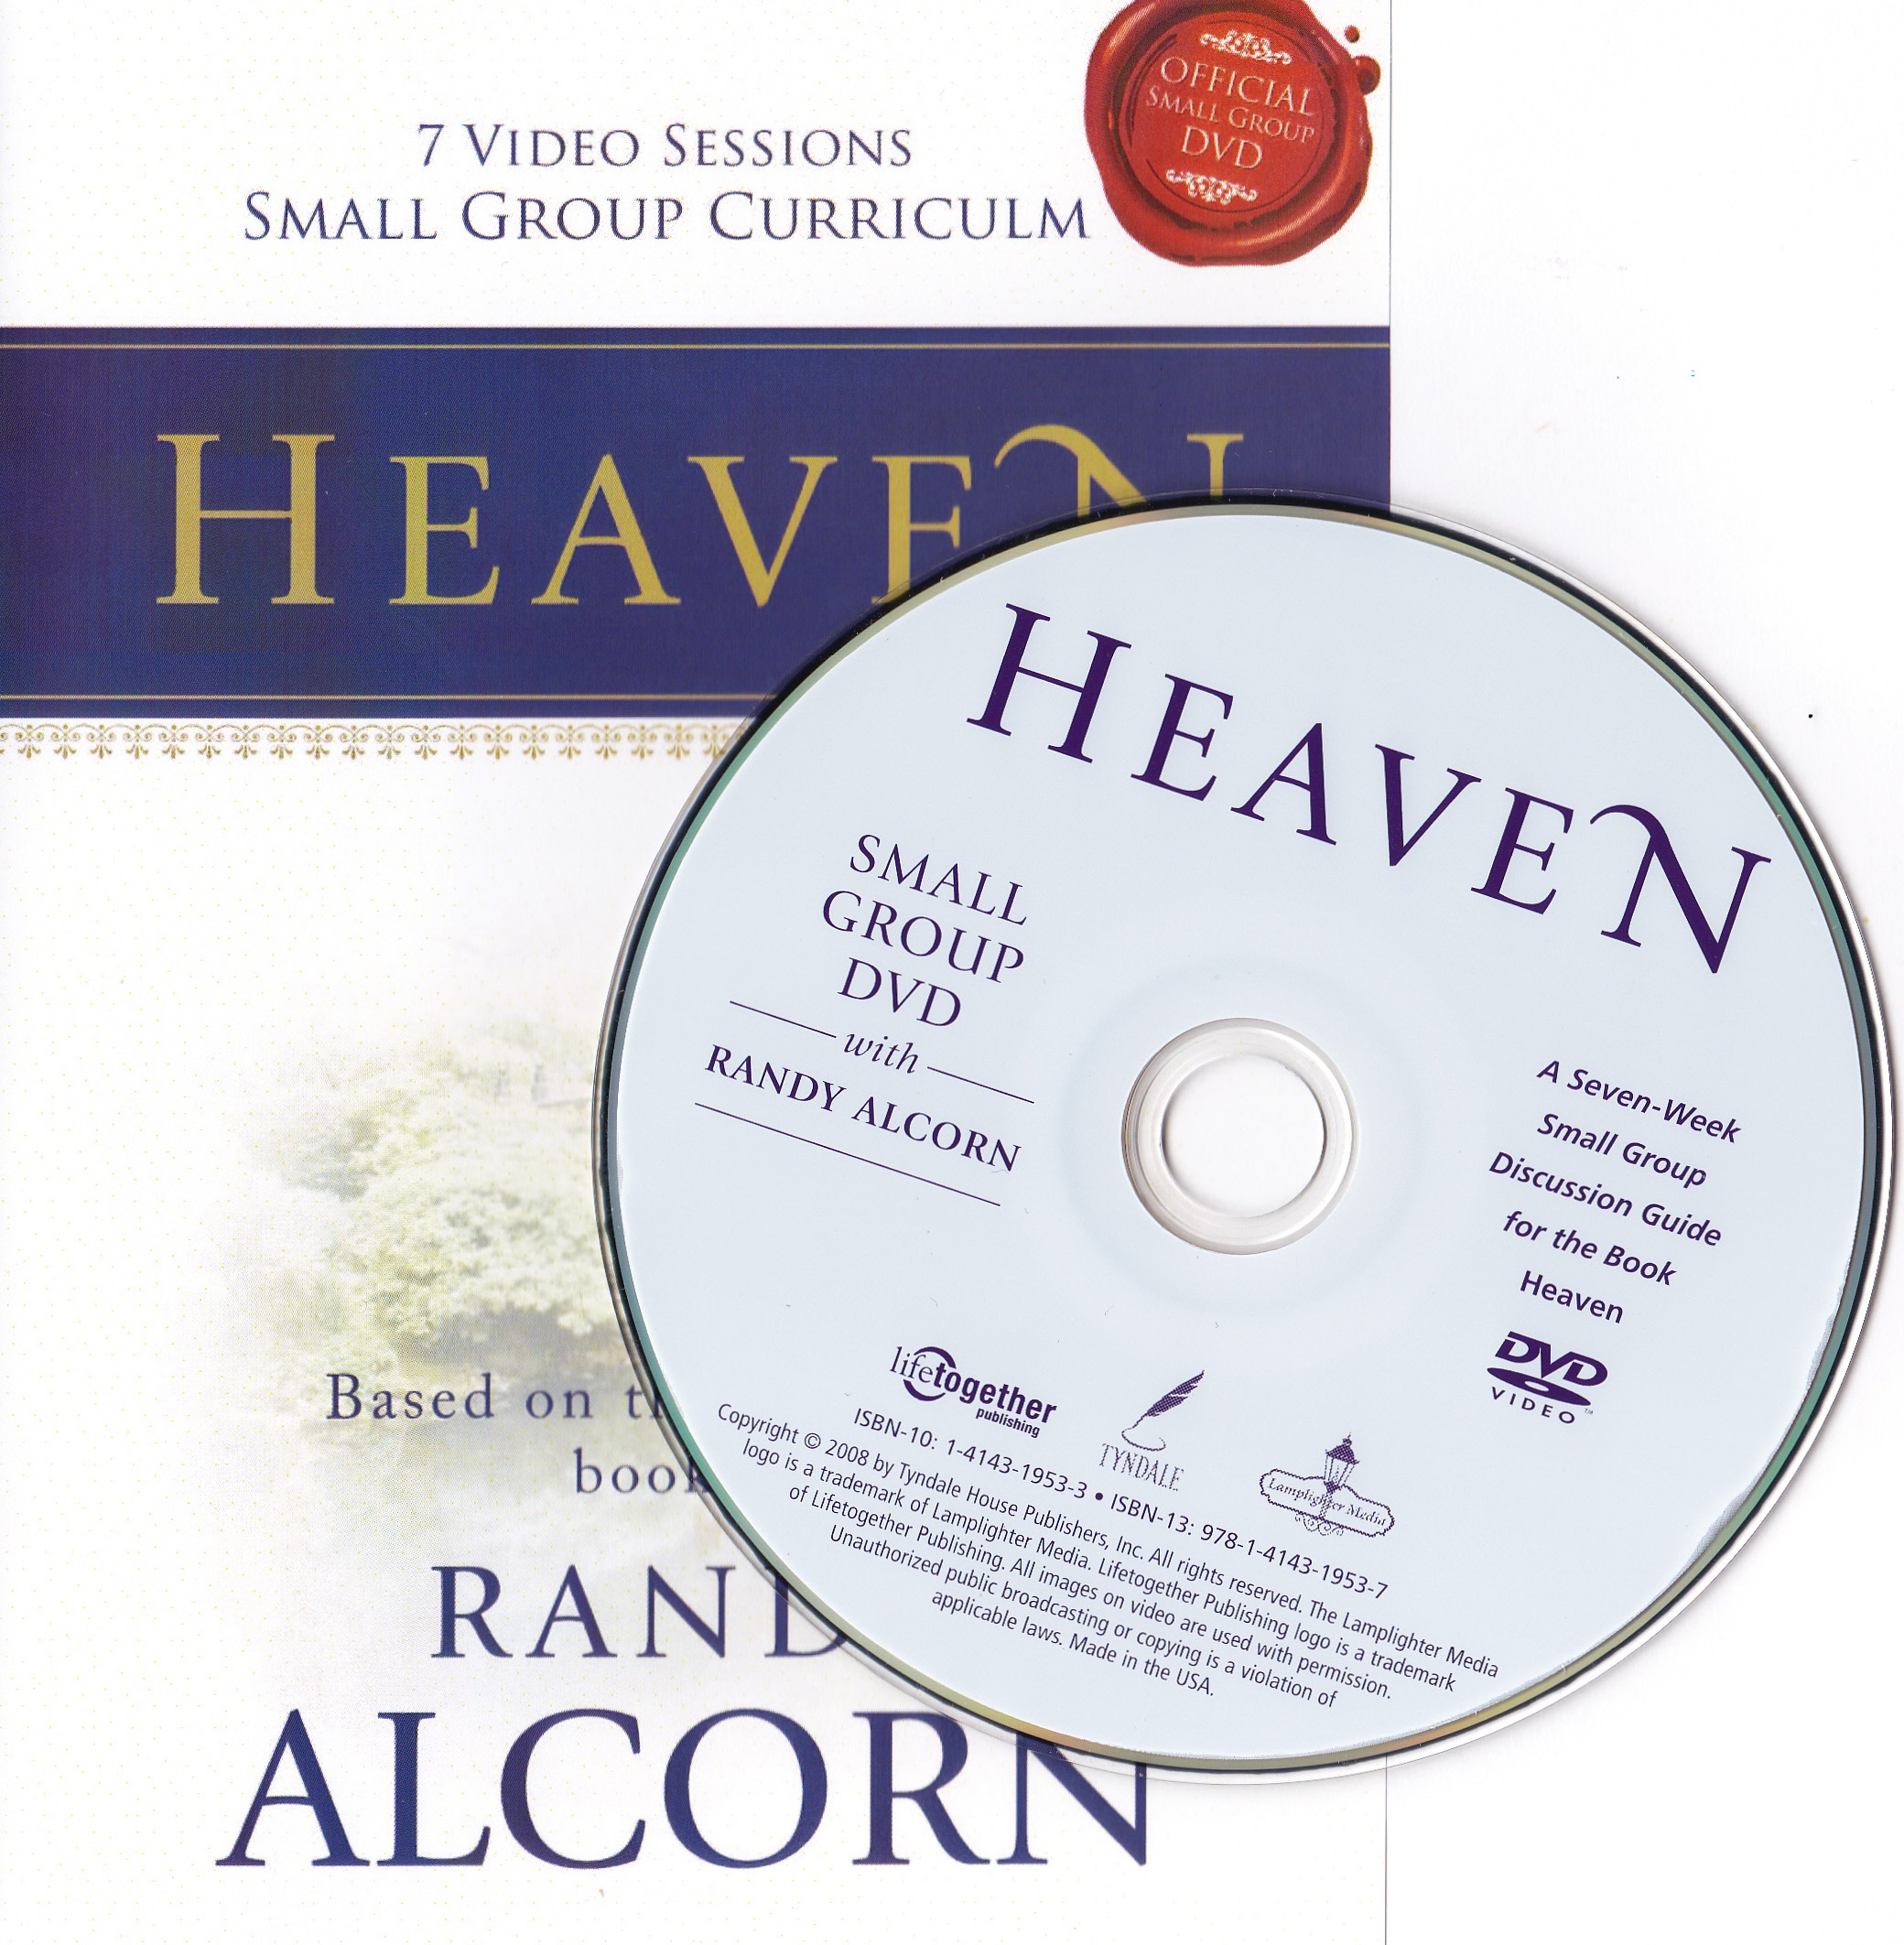 heaven-discussion-guide-dvd.jpg